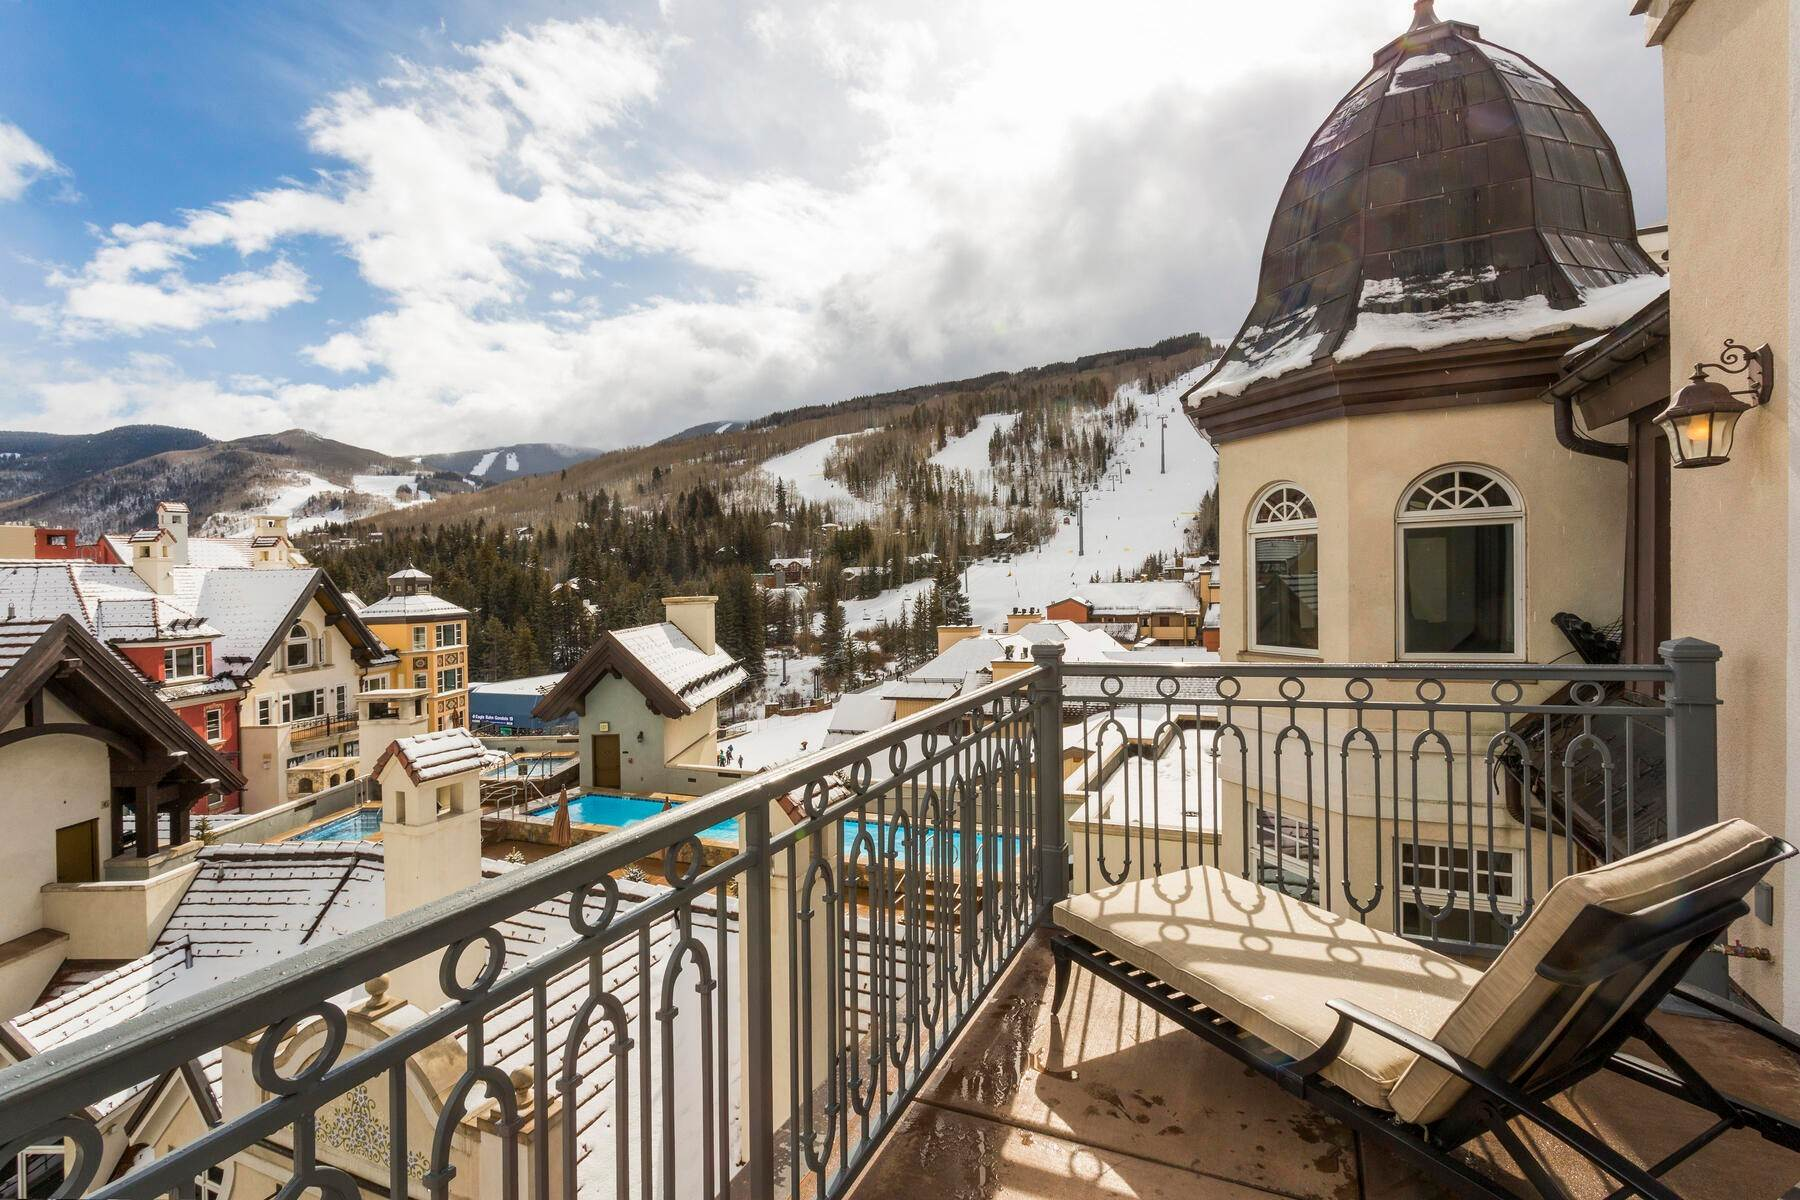 Property for Sale at Ski-In / Ski-Out Penthouse at The Arrabelle at Vail Square 675 Lionshead Place #617 Vail, Colorado 81657 United States